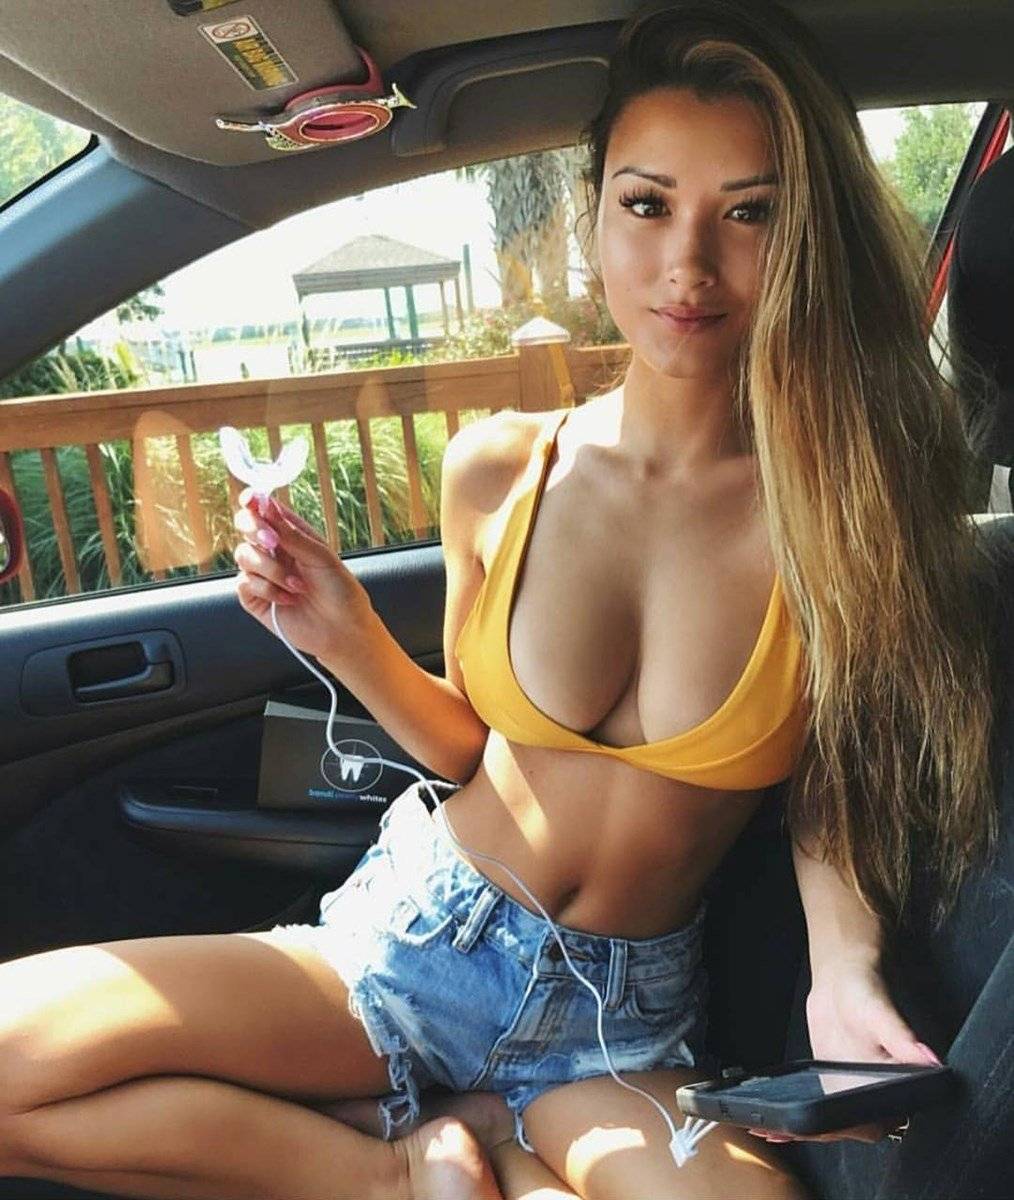 Keilah Kang Hottest Photos Ultimate Collection